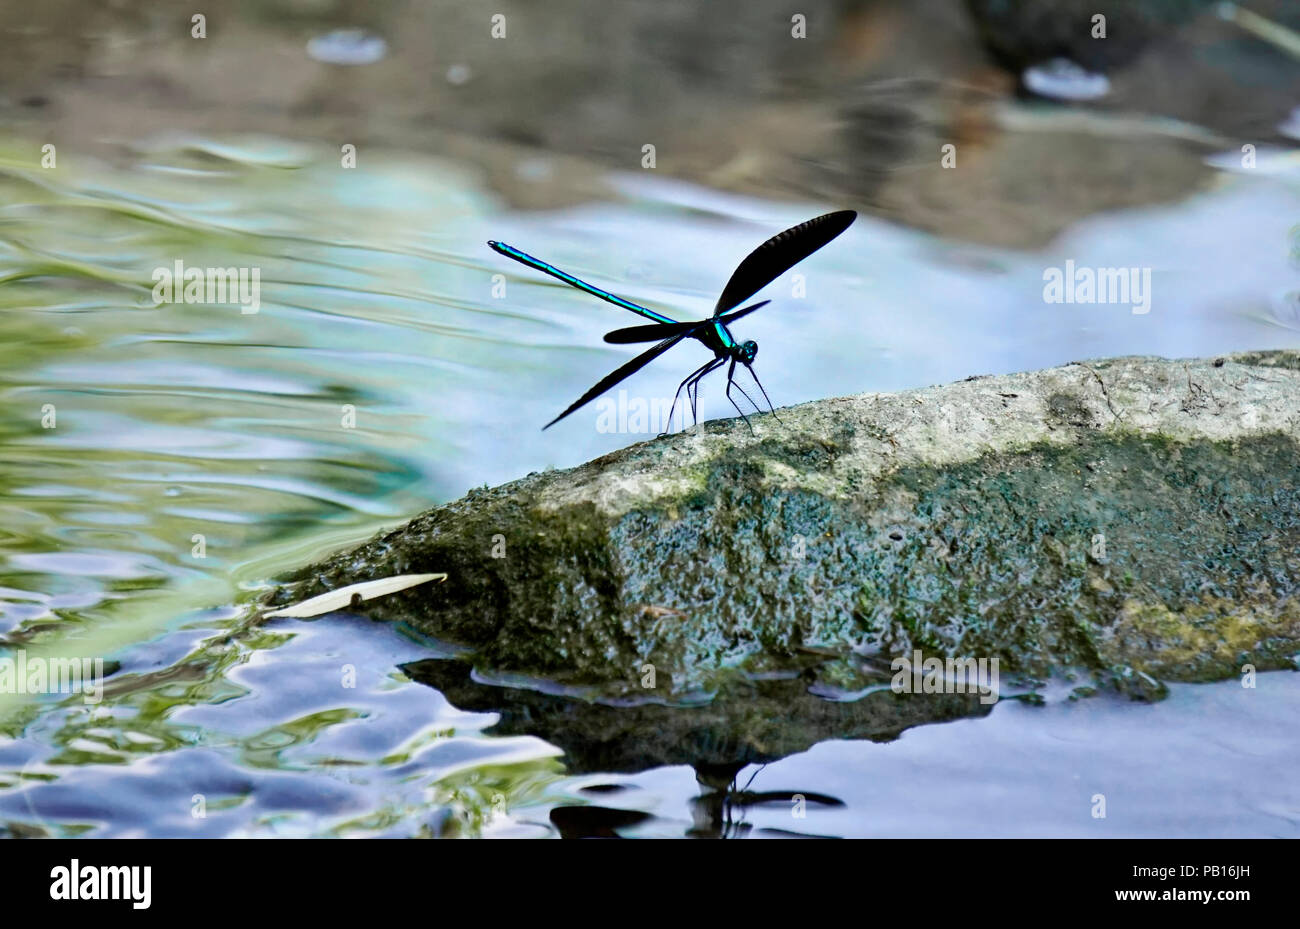 Ebony jewelwing flexing its beautiful iridious metallic green-blue colors on rock by stream in natural habitat in Toronto Ontario, Canada Stock Photo